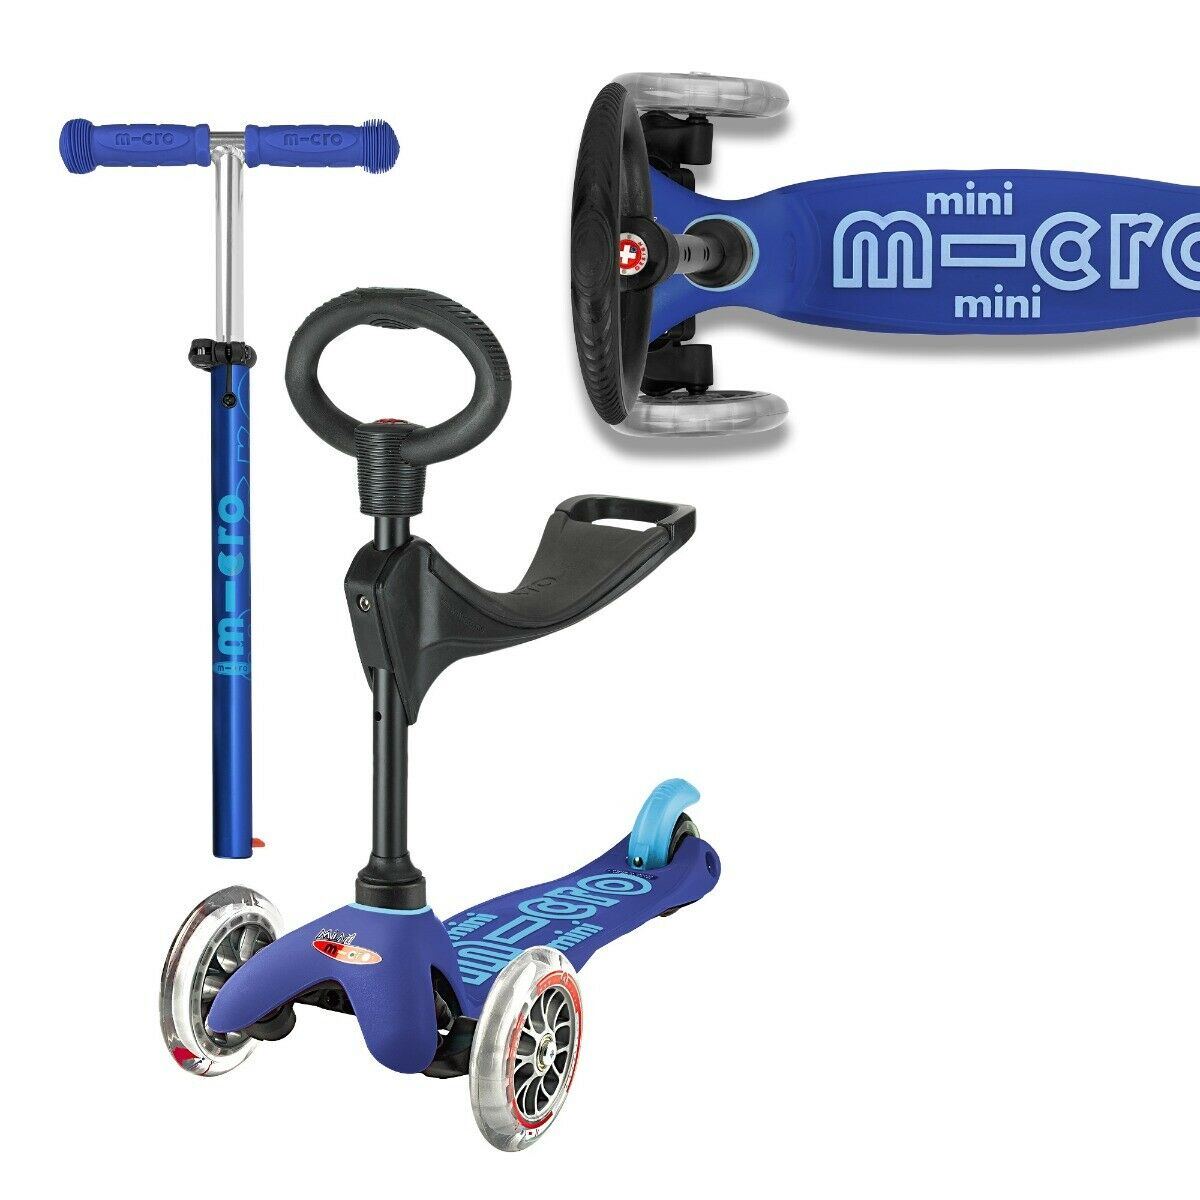 Micro Mini 3-in-1 Deluxe Ride On Seated Scooter - Blue